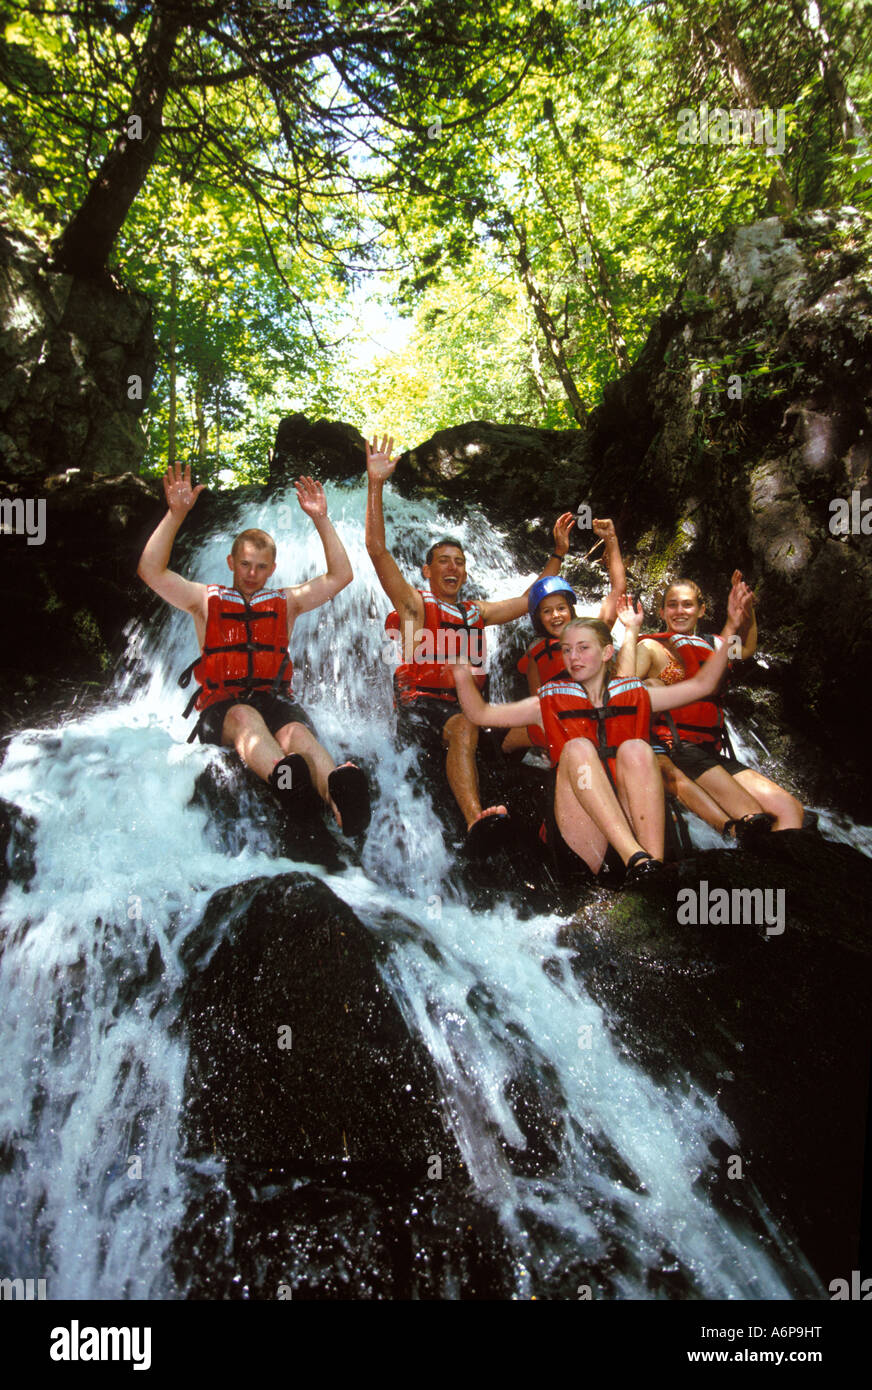 Group Young Kids Having Fun Canyoning Or Sliding Down A Waterfall In The Countryside